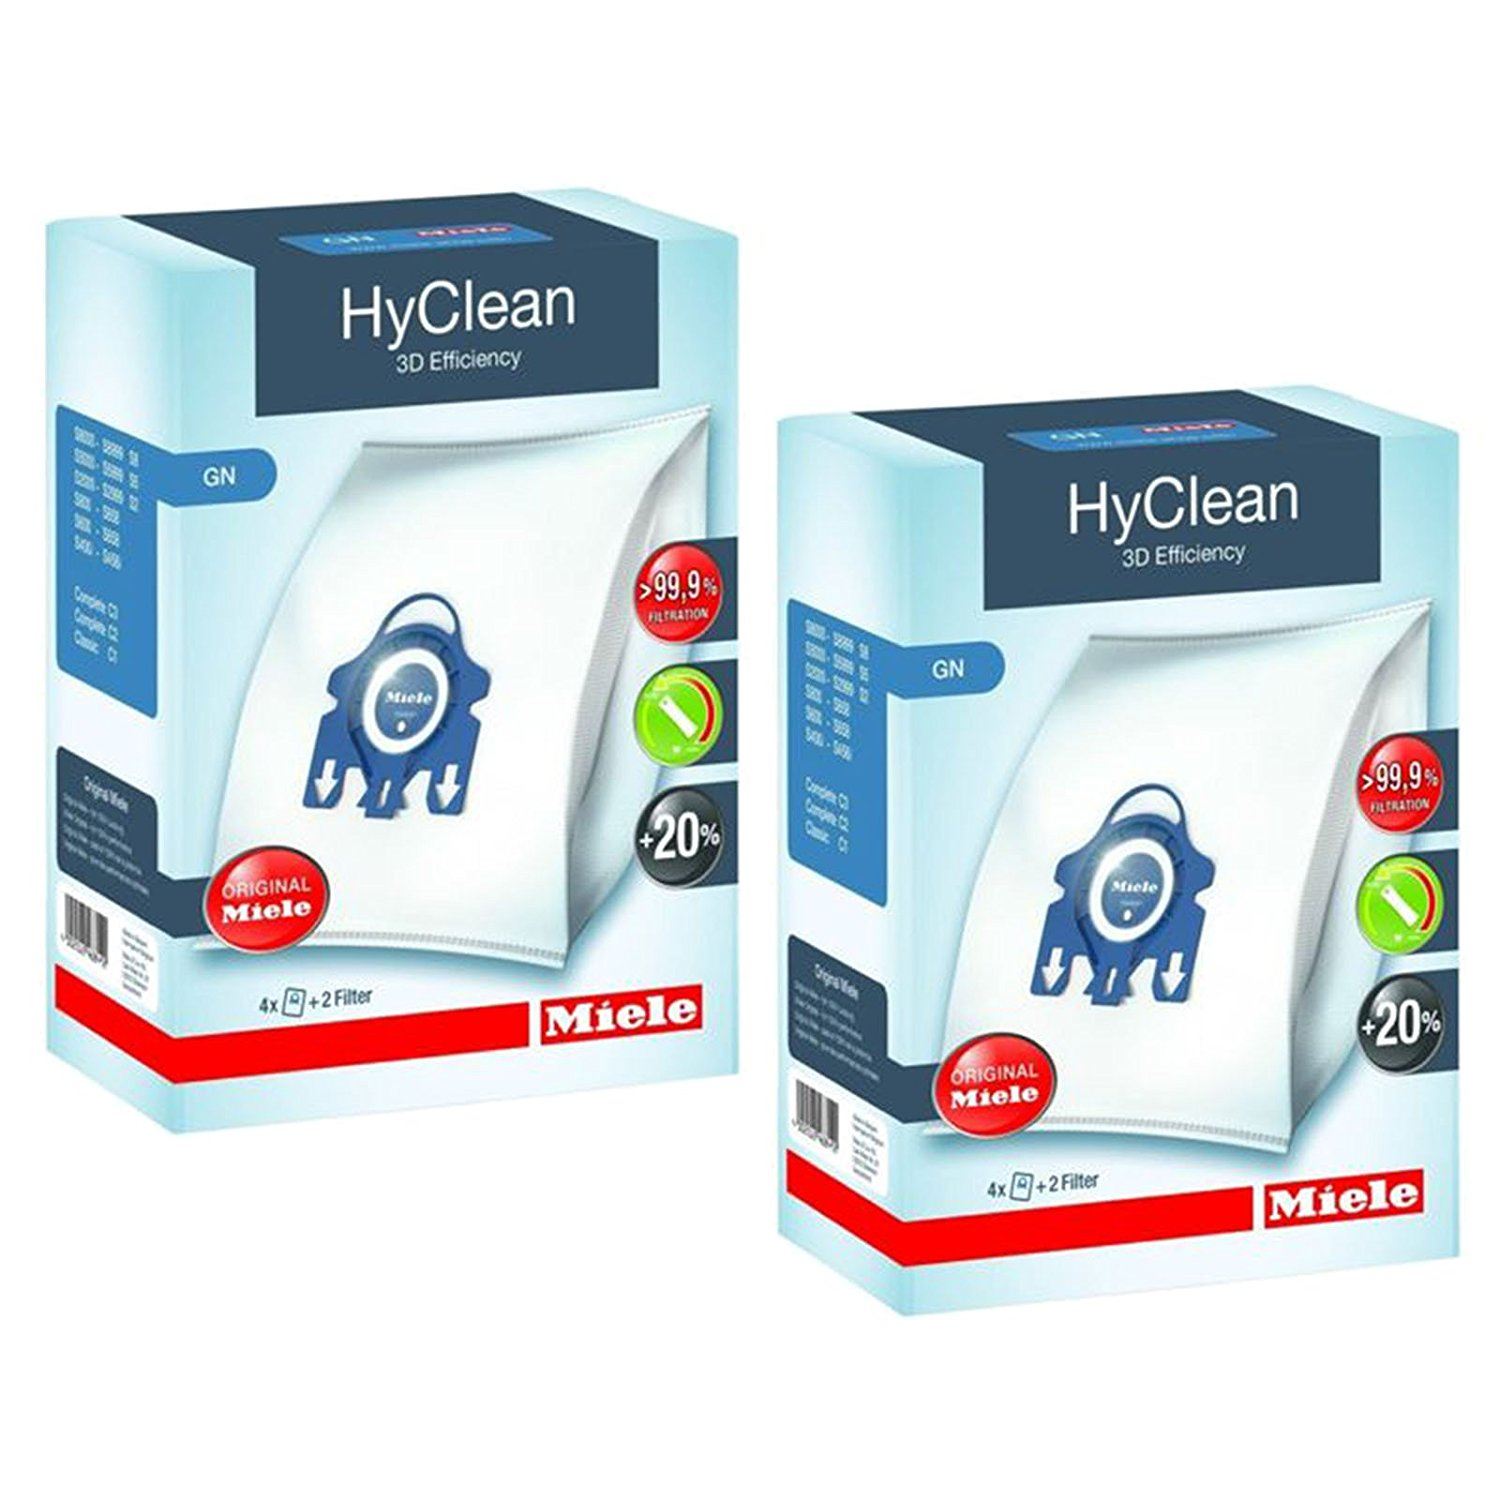 Miele Gn Hyclean 3d Efficiency Dust Bags For Vacuum 2 Bo Of 4 Filters